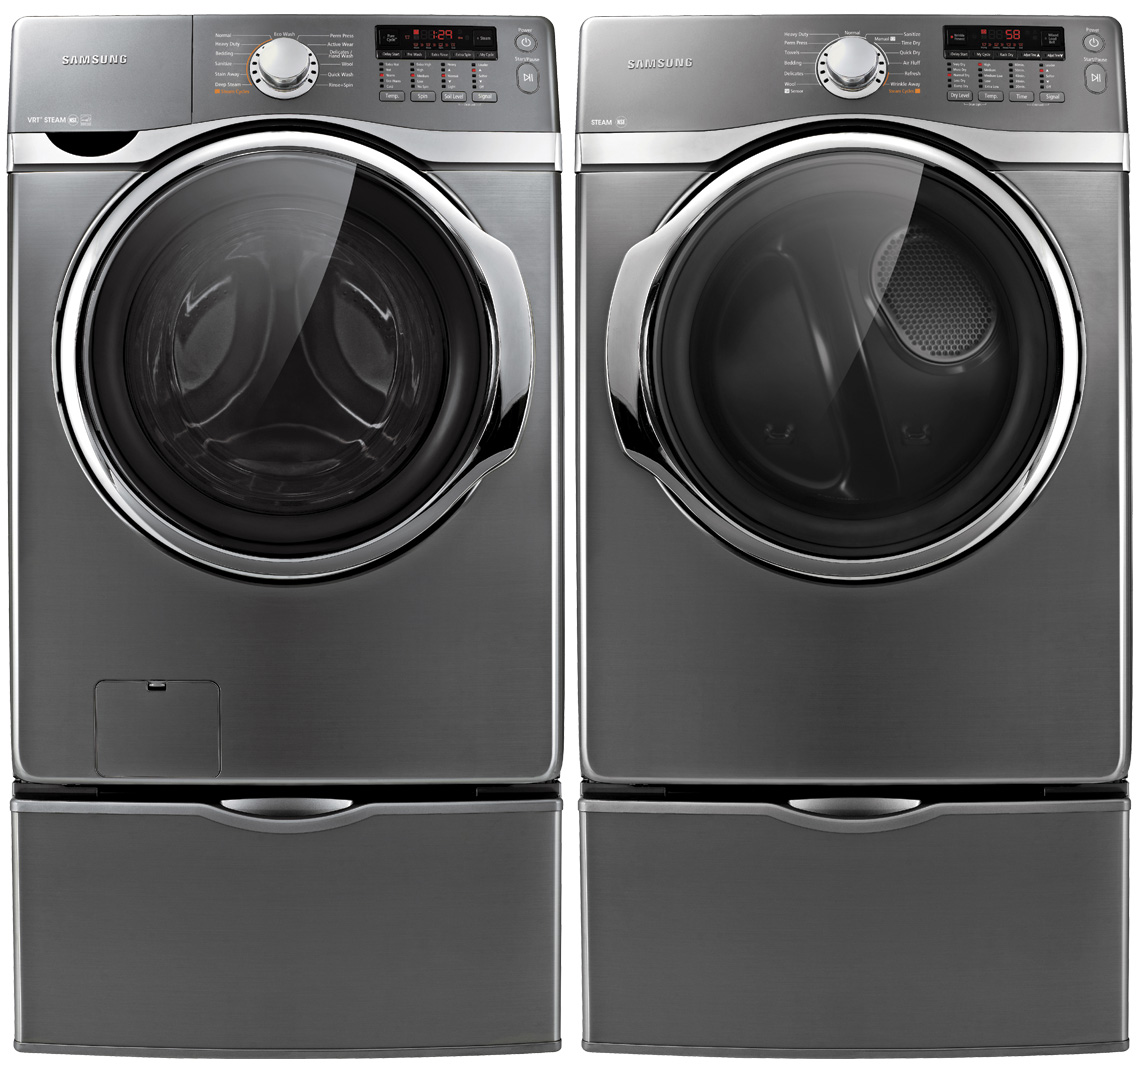 Samsung 3.9 cu. ft. High-Efficiency Front-Load Washer - Stainless Platinum